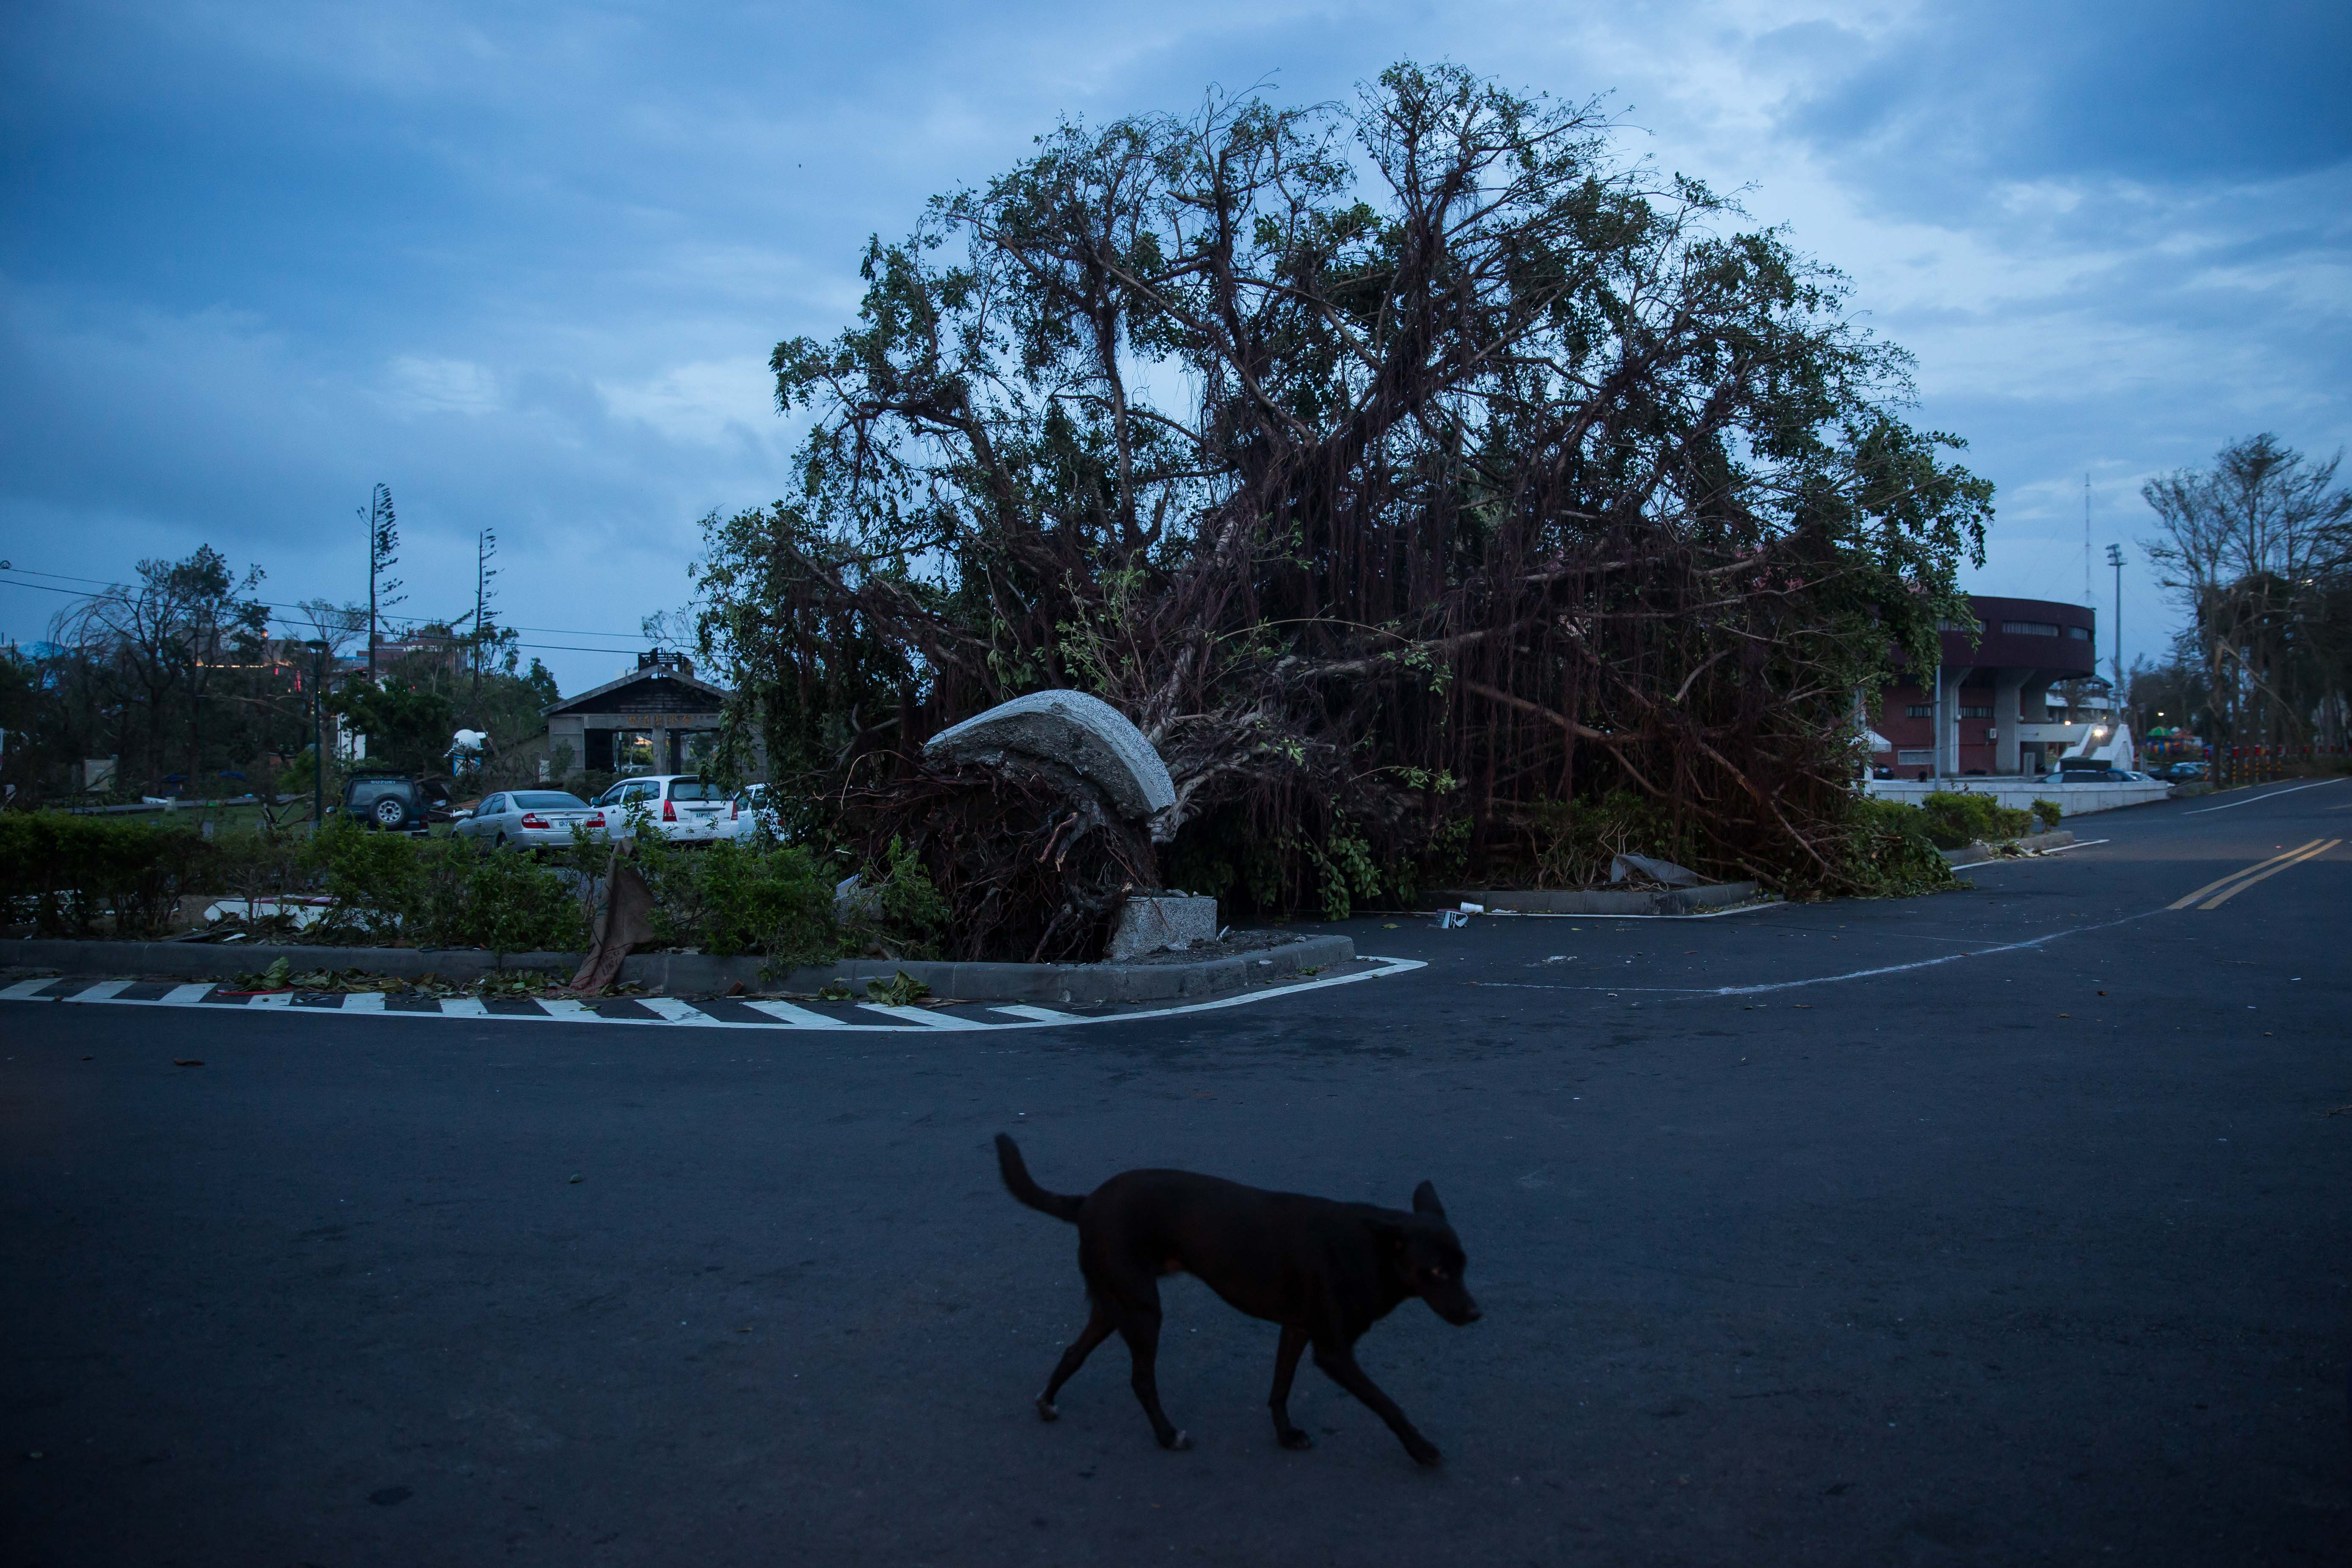 A dog walks past uprooted trees damaged by Typhoon Nepartak on July 9, 2016 in Taitung, Taiwan.